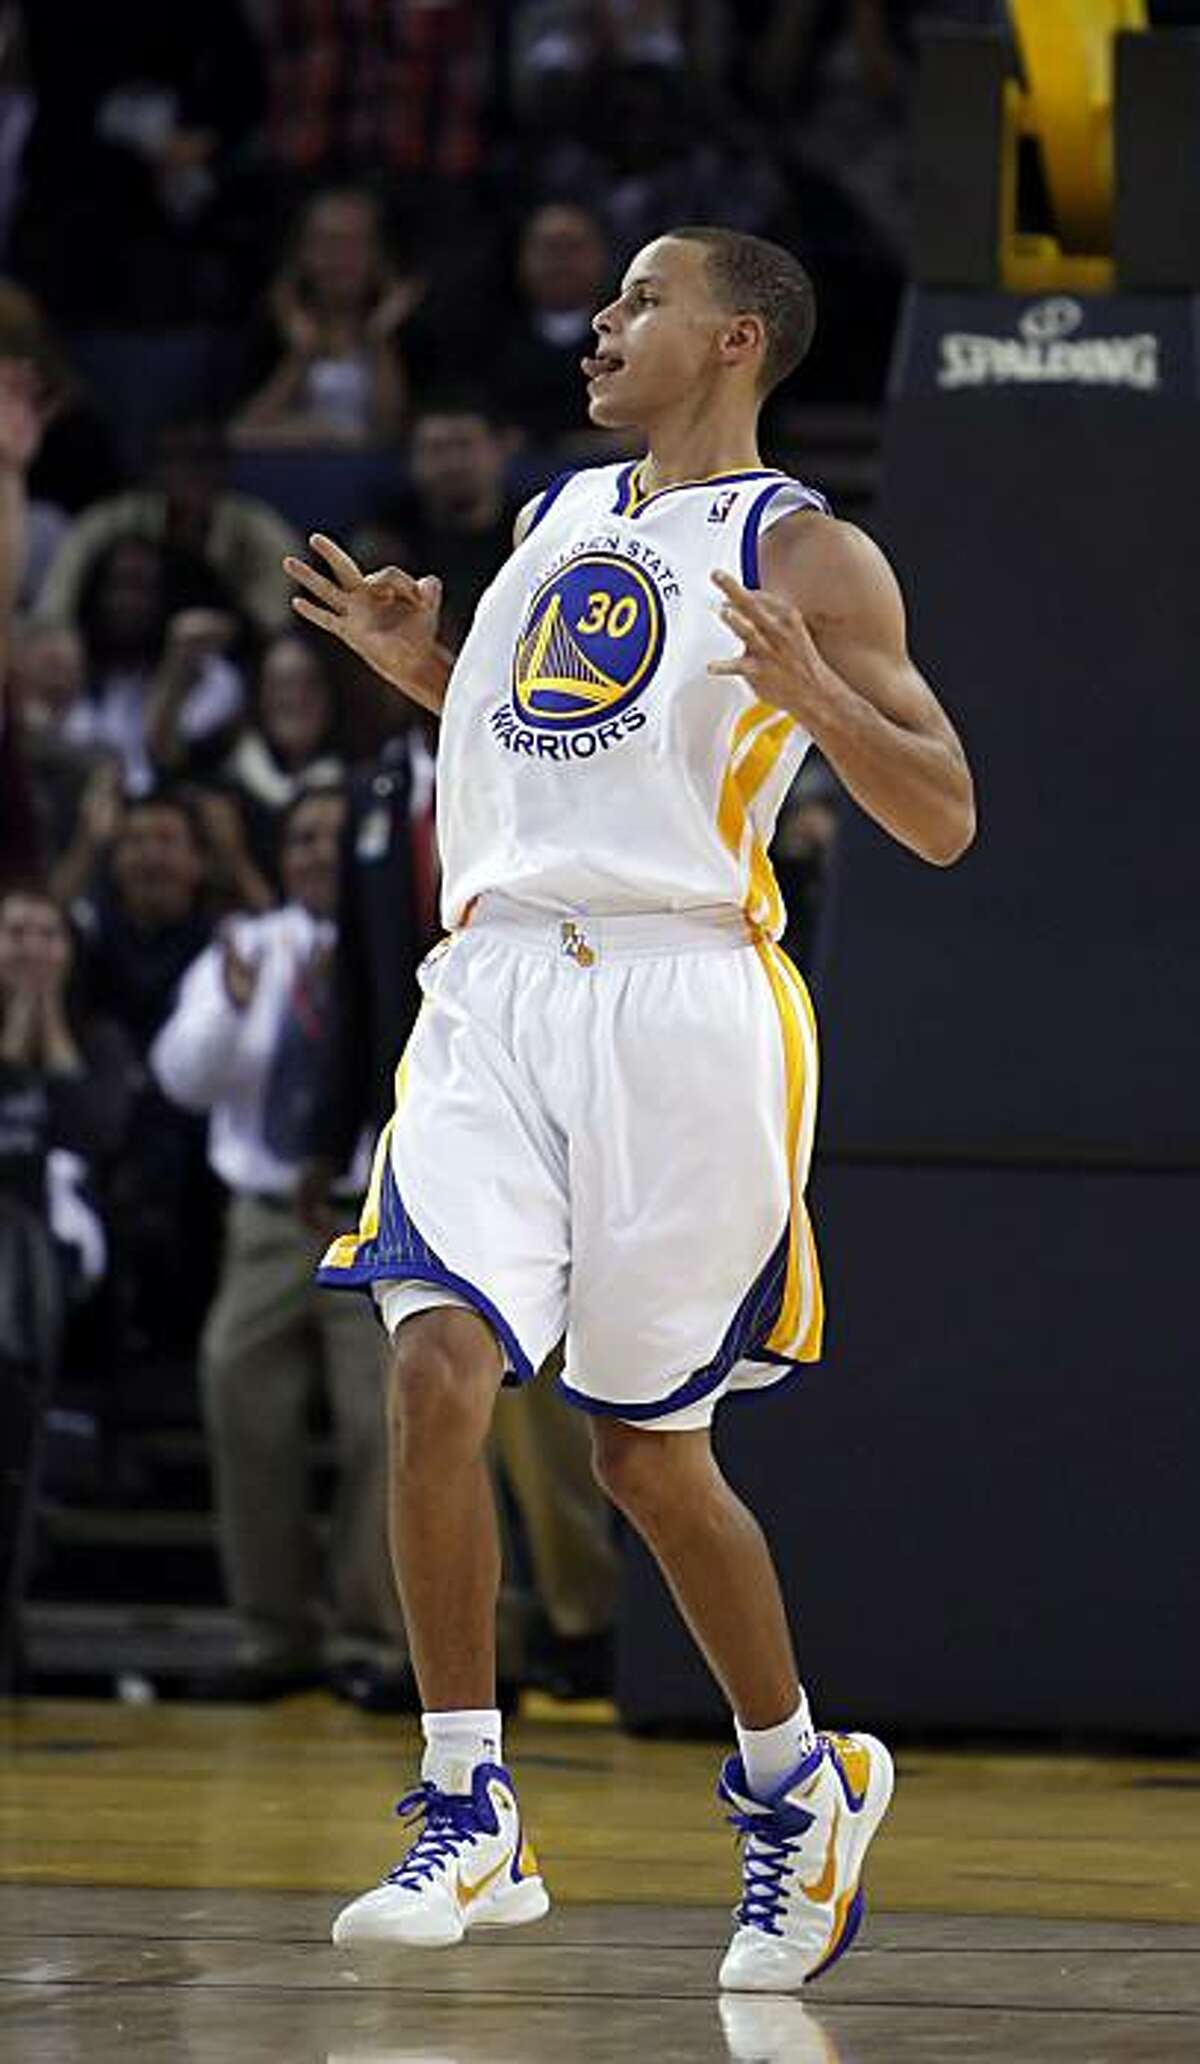 Stephen Curry of the Warriors reacts to his last second three point shot to end the third quarter. The Golden State Warriors played the Portland Trail Blazers at Oracle Arena in Oakland, Calif., on Monday, October 18, 2010, defeating the Blazers 100-78.